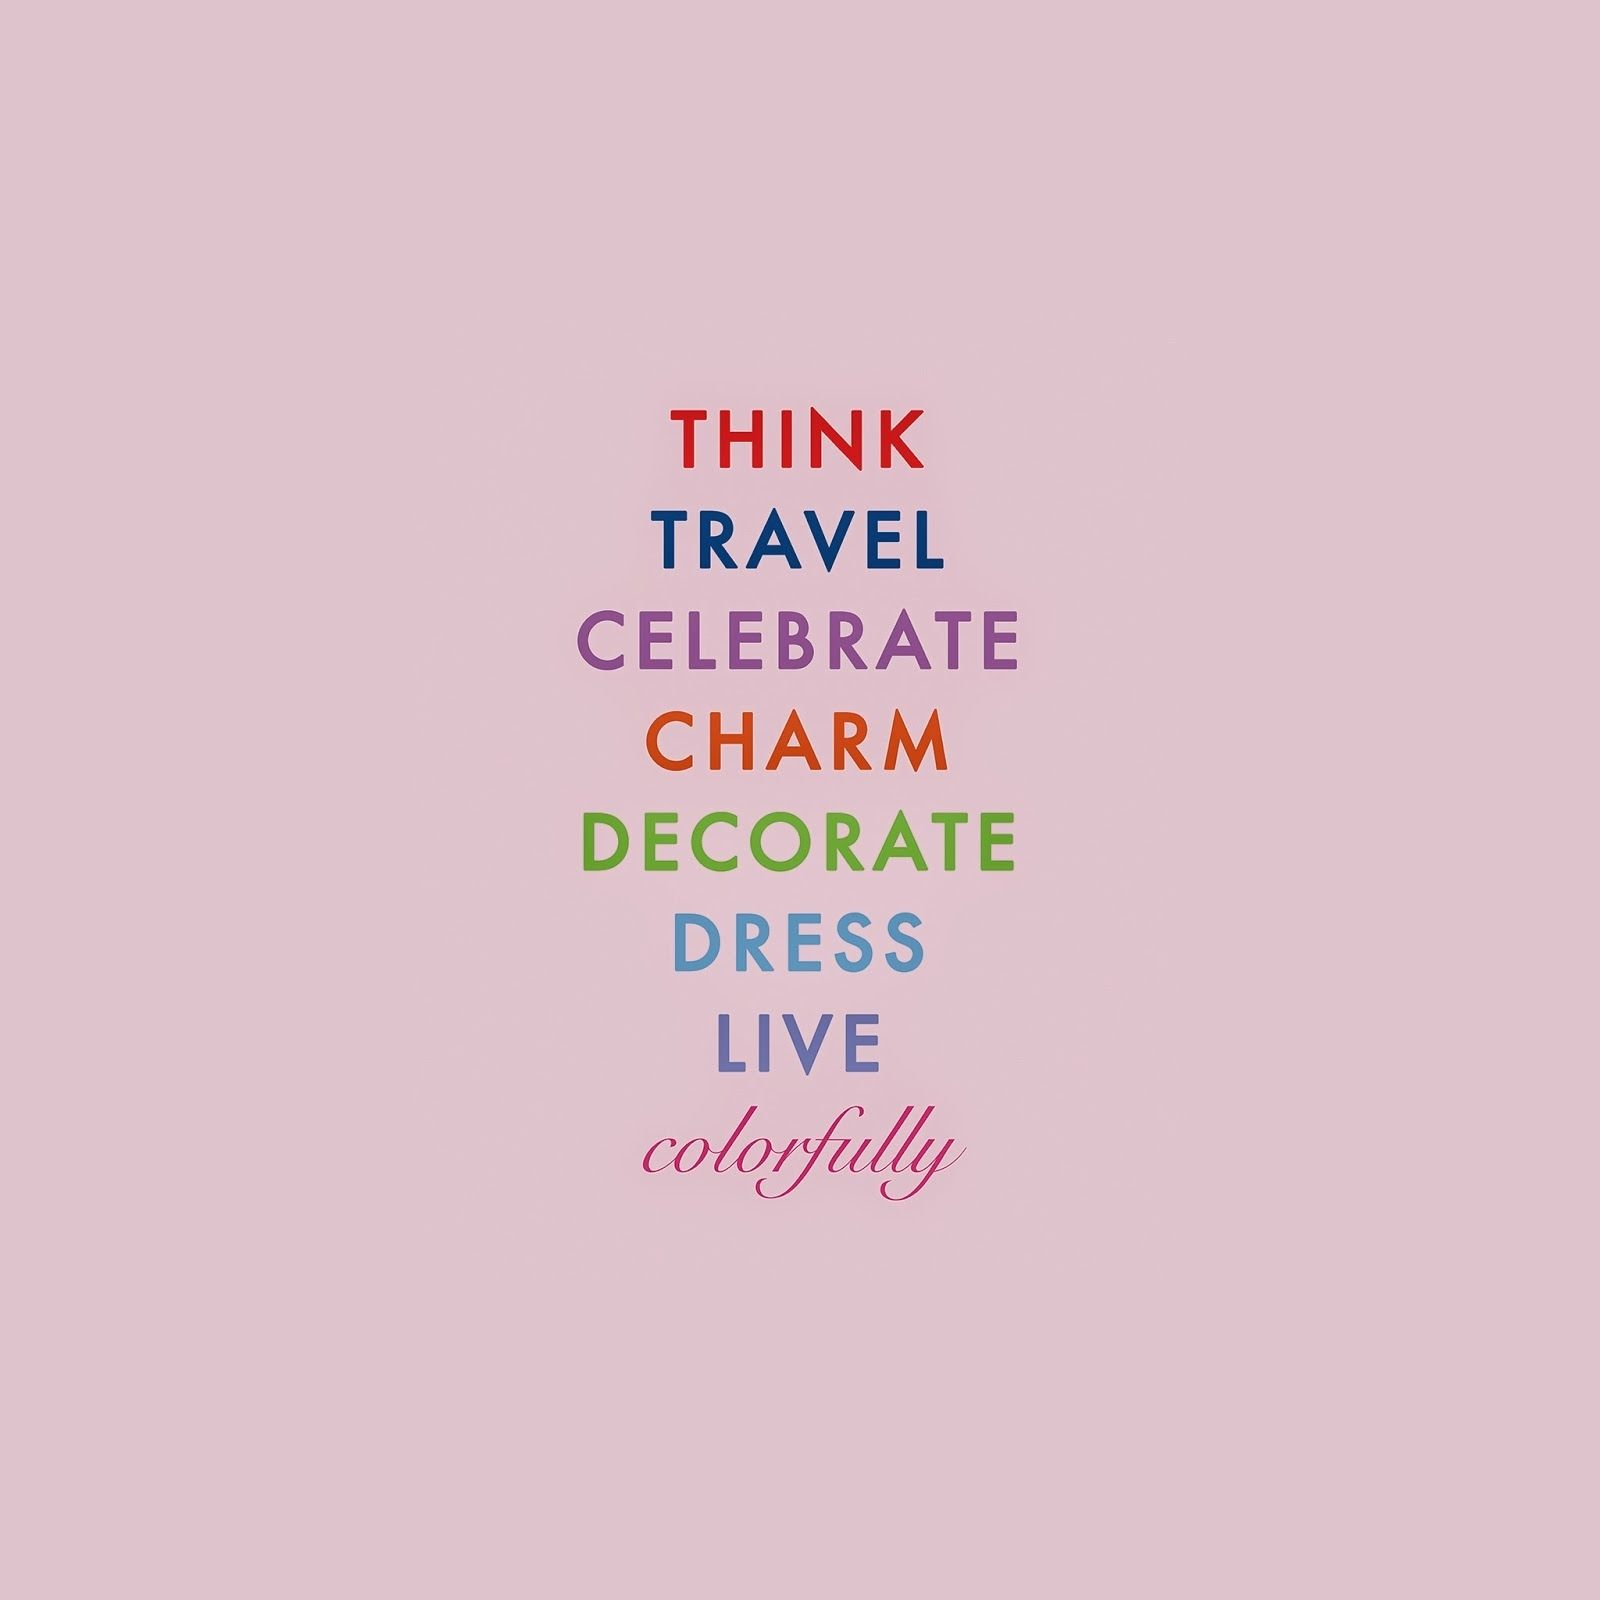 Kate Spade Quotes Kate Spade Quotes Iphone Wallpaper  Download Best Kate Spade